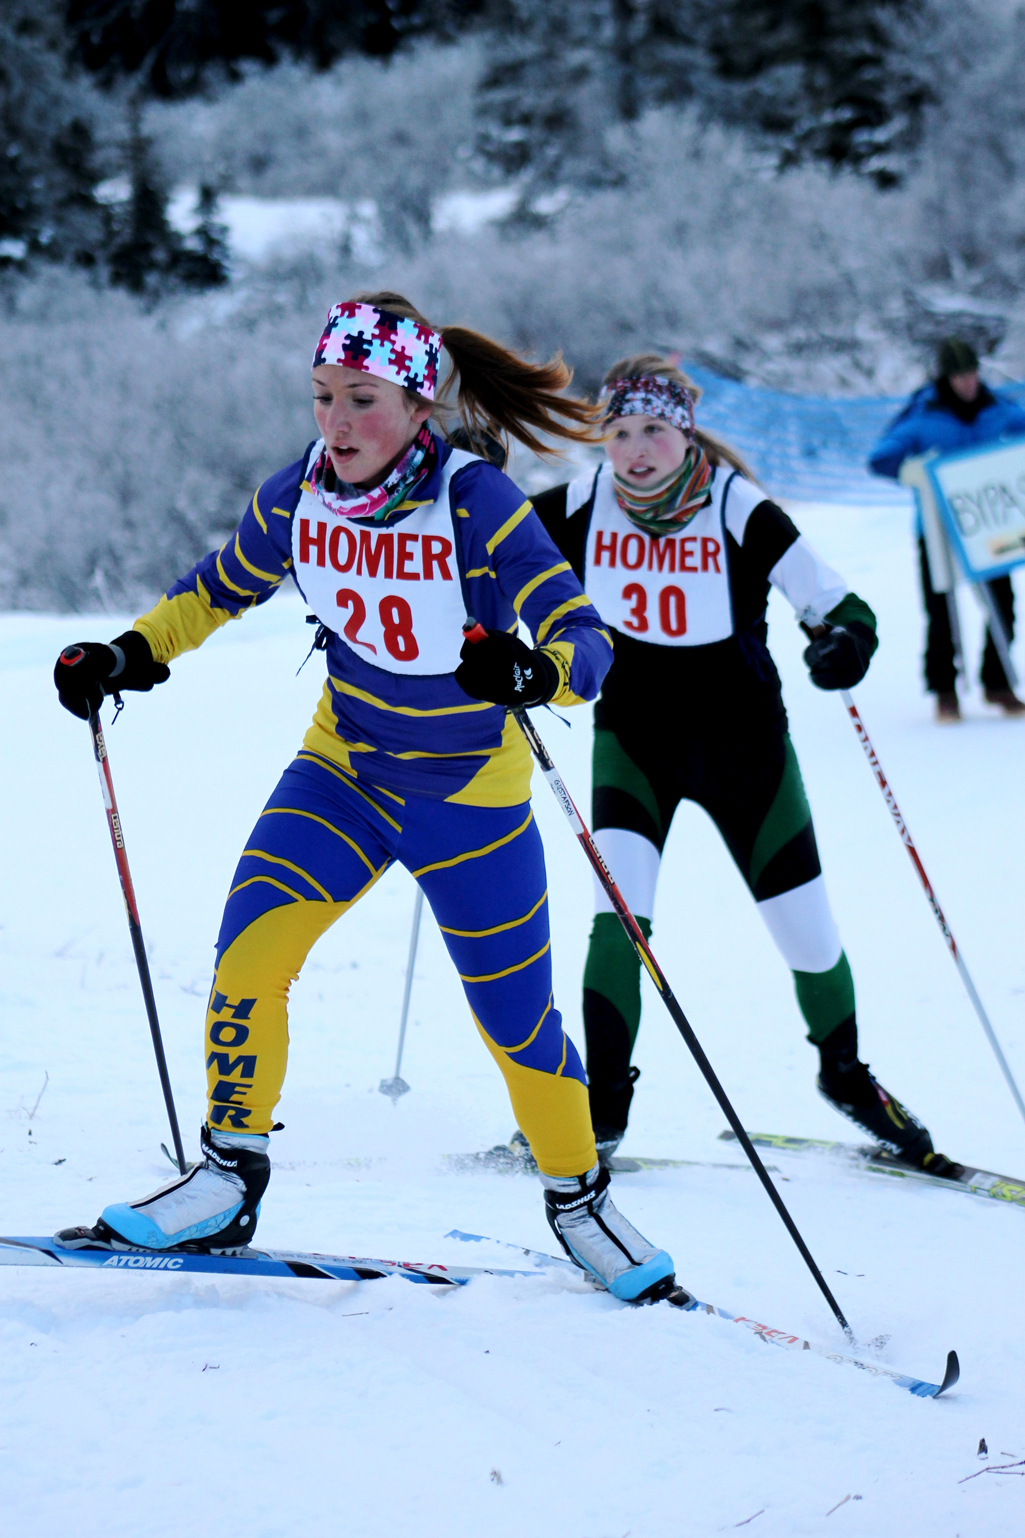 Rachel Ellert skis for the Mariners during Saturday's 6K Classic race of the Homer Invitational. The Mariner girls placed third in the ski meet.-Photo by Angelina Skowronski